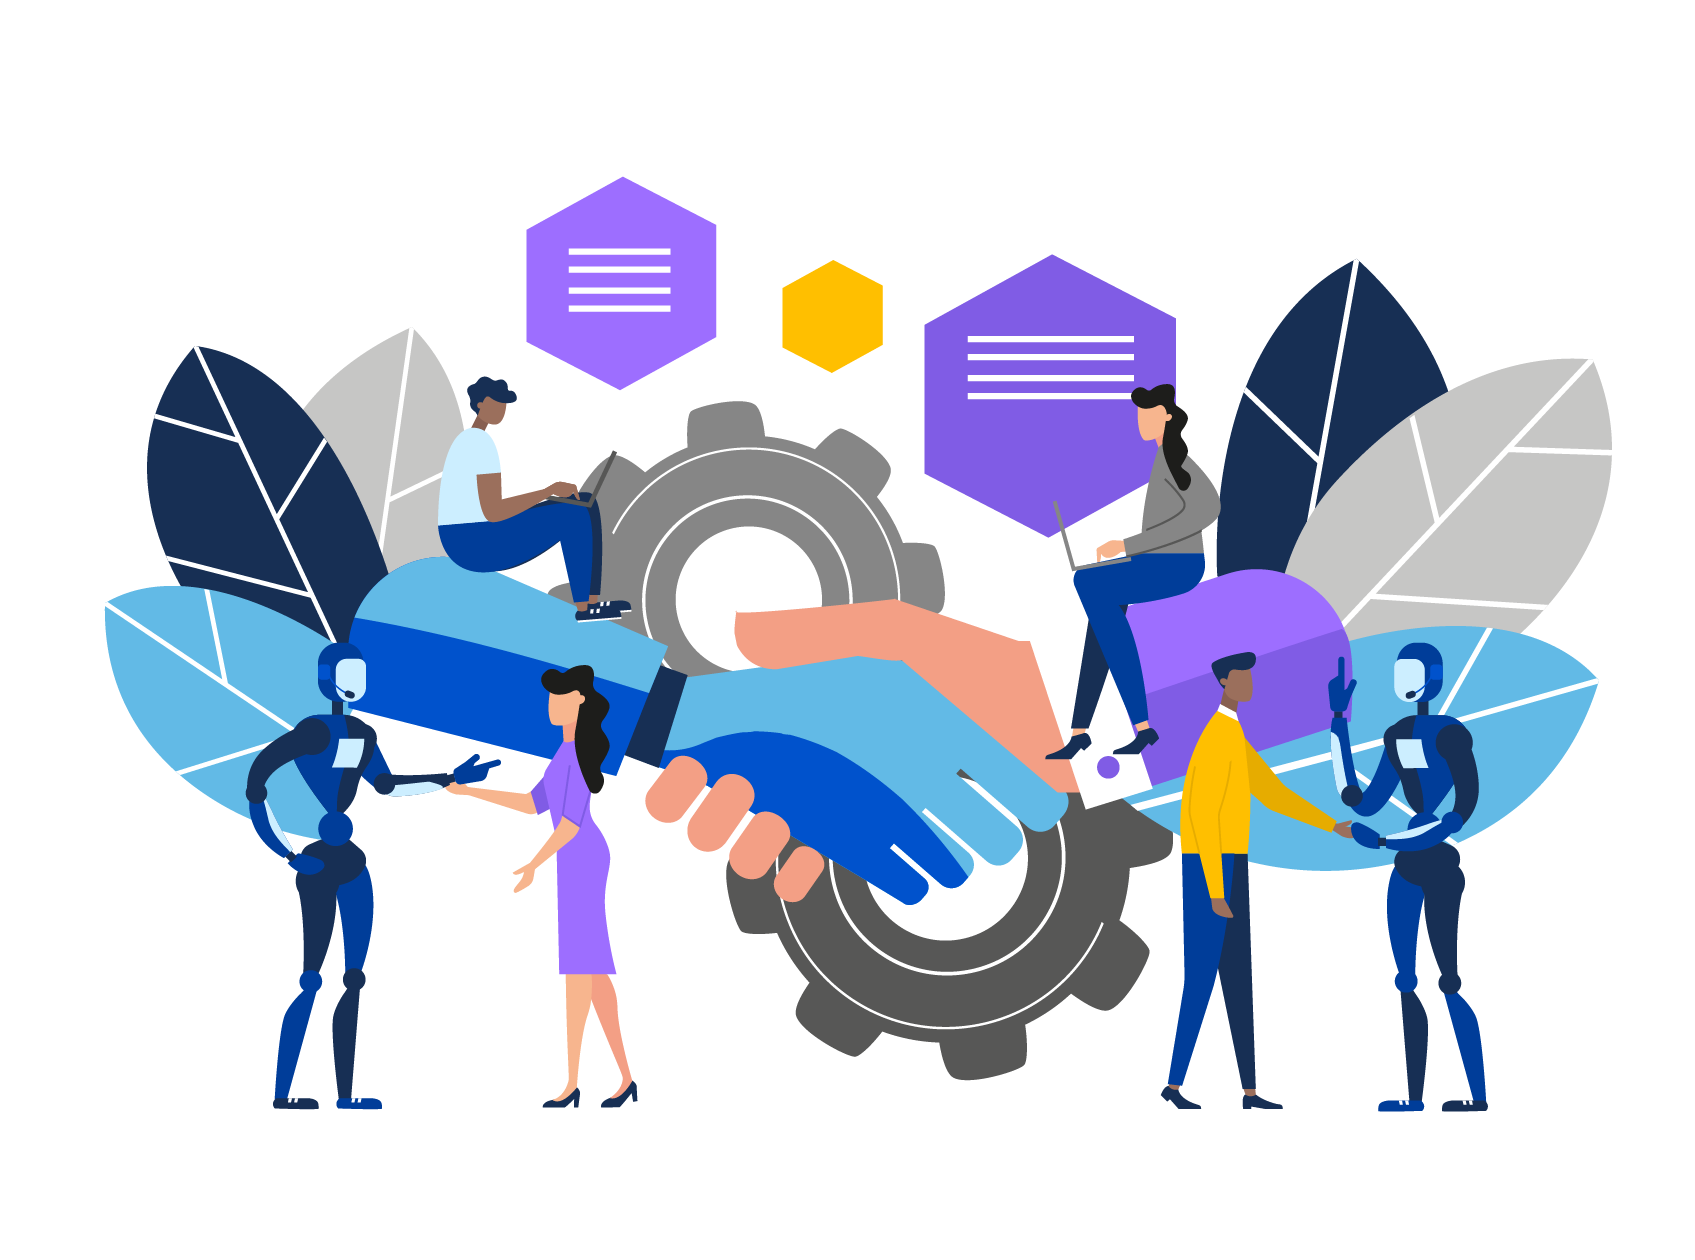 Illustrated image of students shaking hands with robots symbolizing Law Student Connect using artificial intelligence to match law students with legal employers.